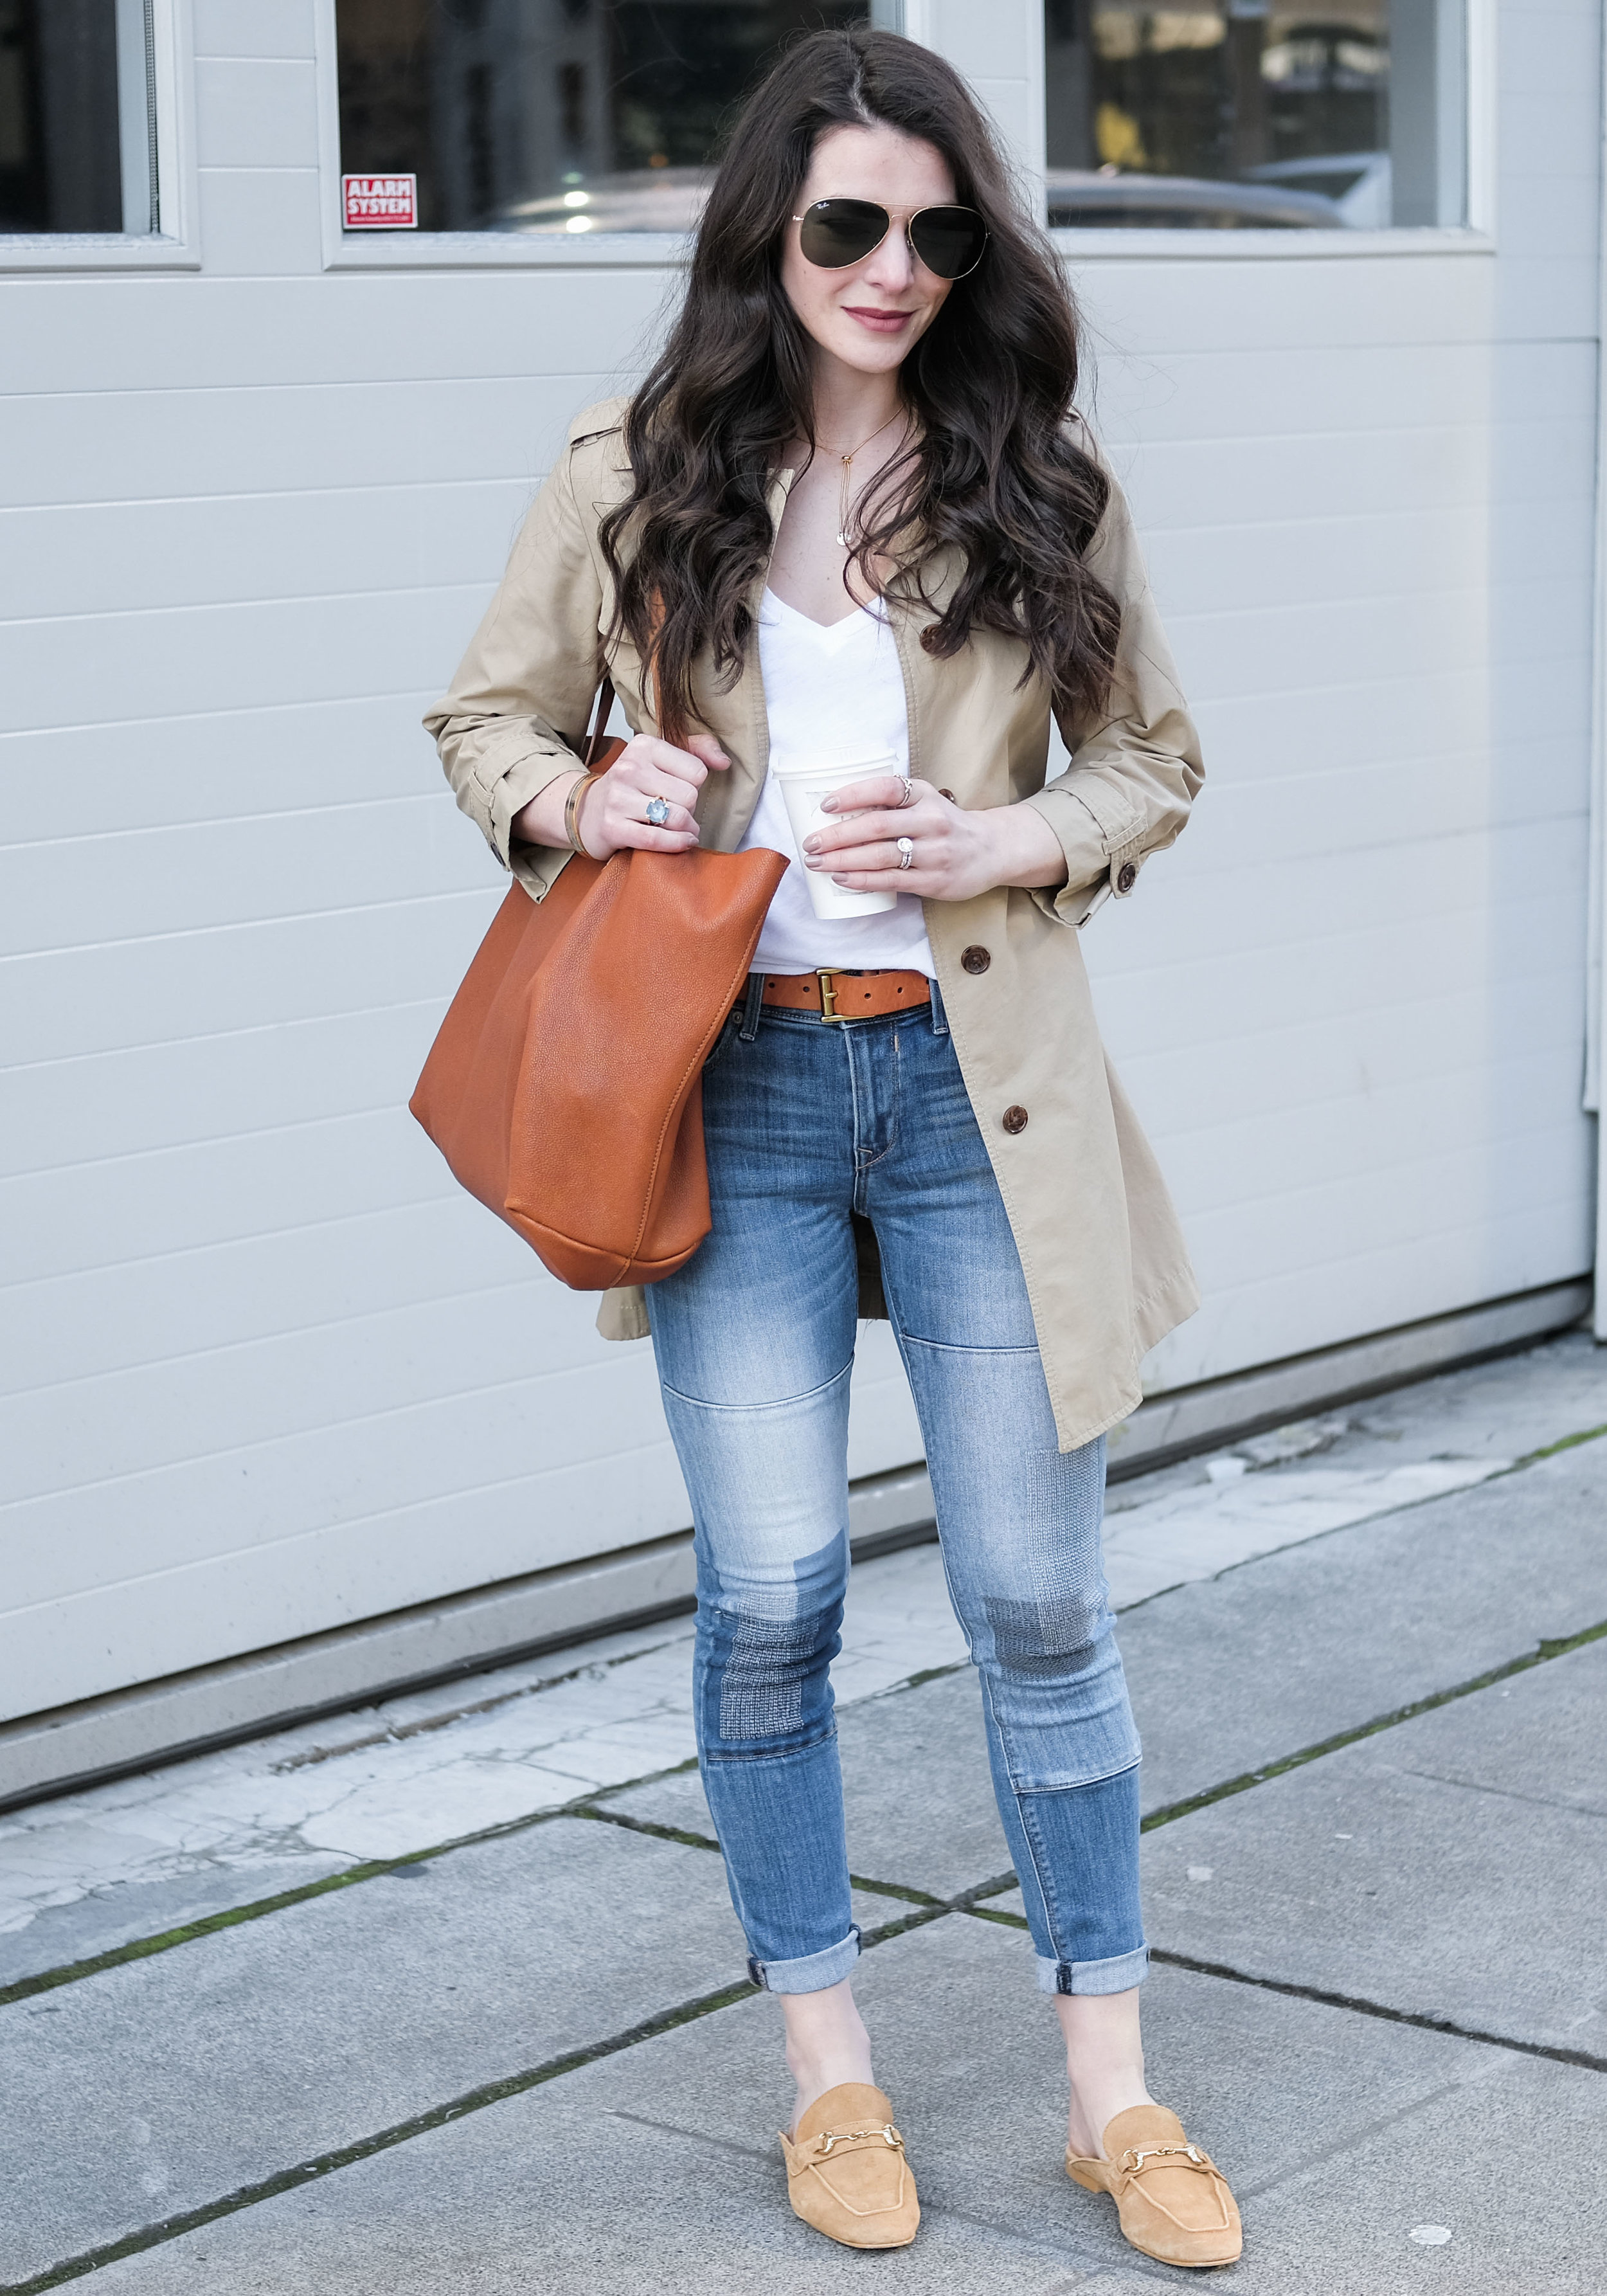 Steve Madden Razzi Mules, cute spring outfits with backless mules, trench coat outfit, cute spring outfit.